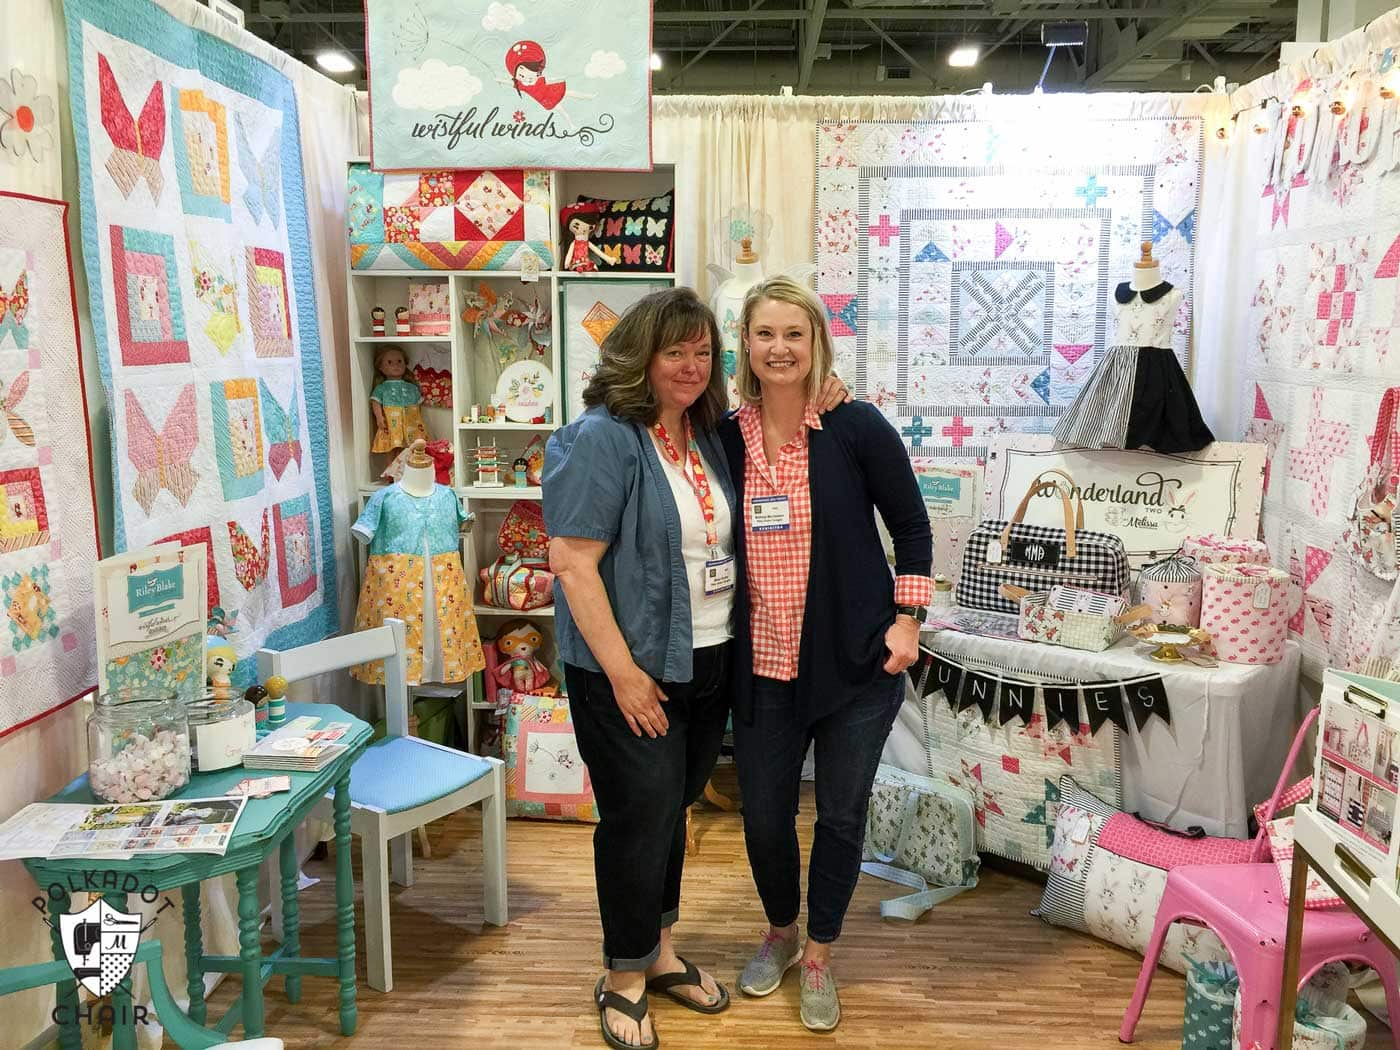 Photos from the Riley Blake booth at Spring Quilt market, lots of cute sewing and quilting projects using Wonderland Fabric